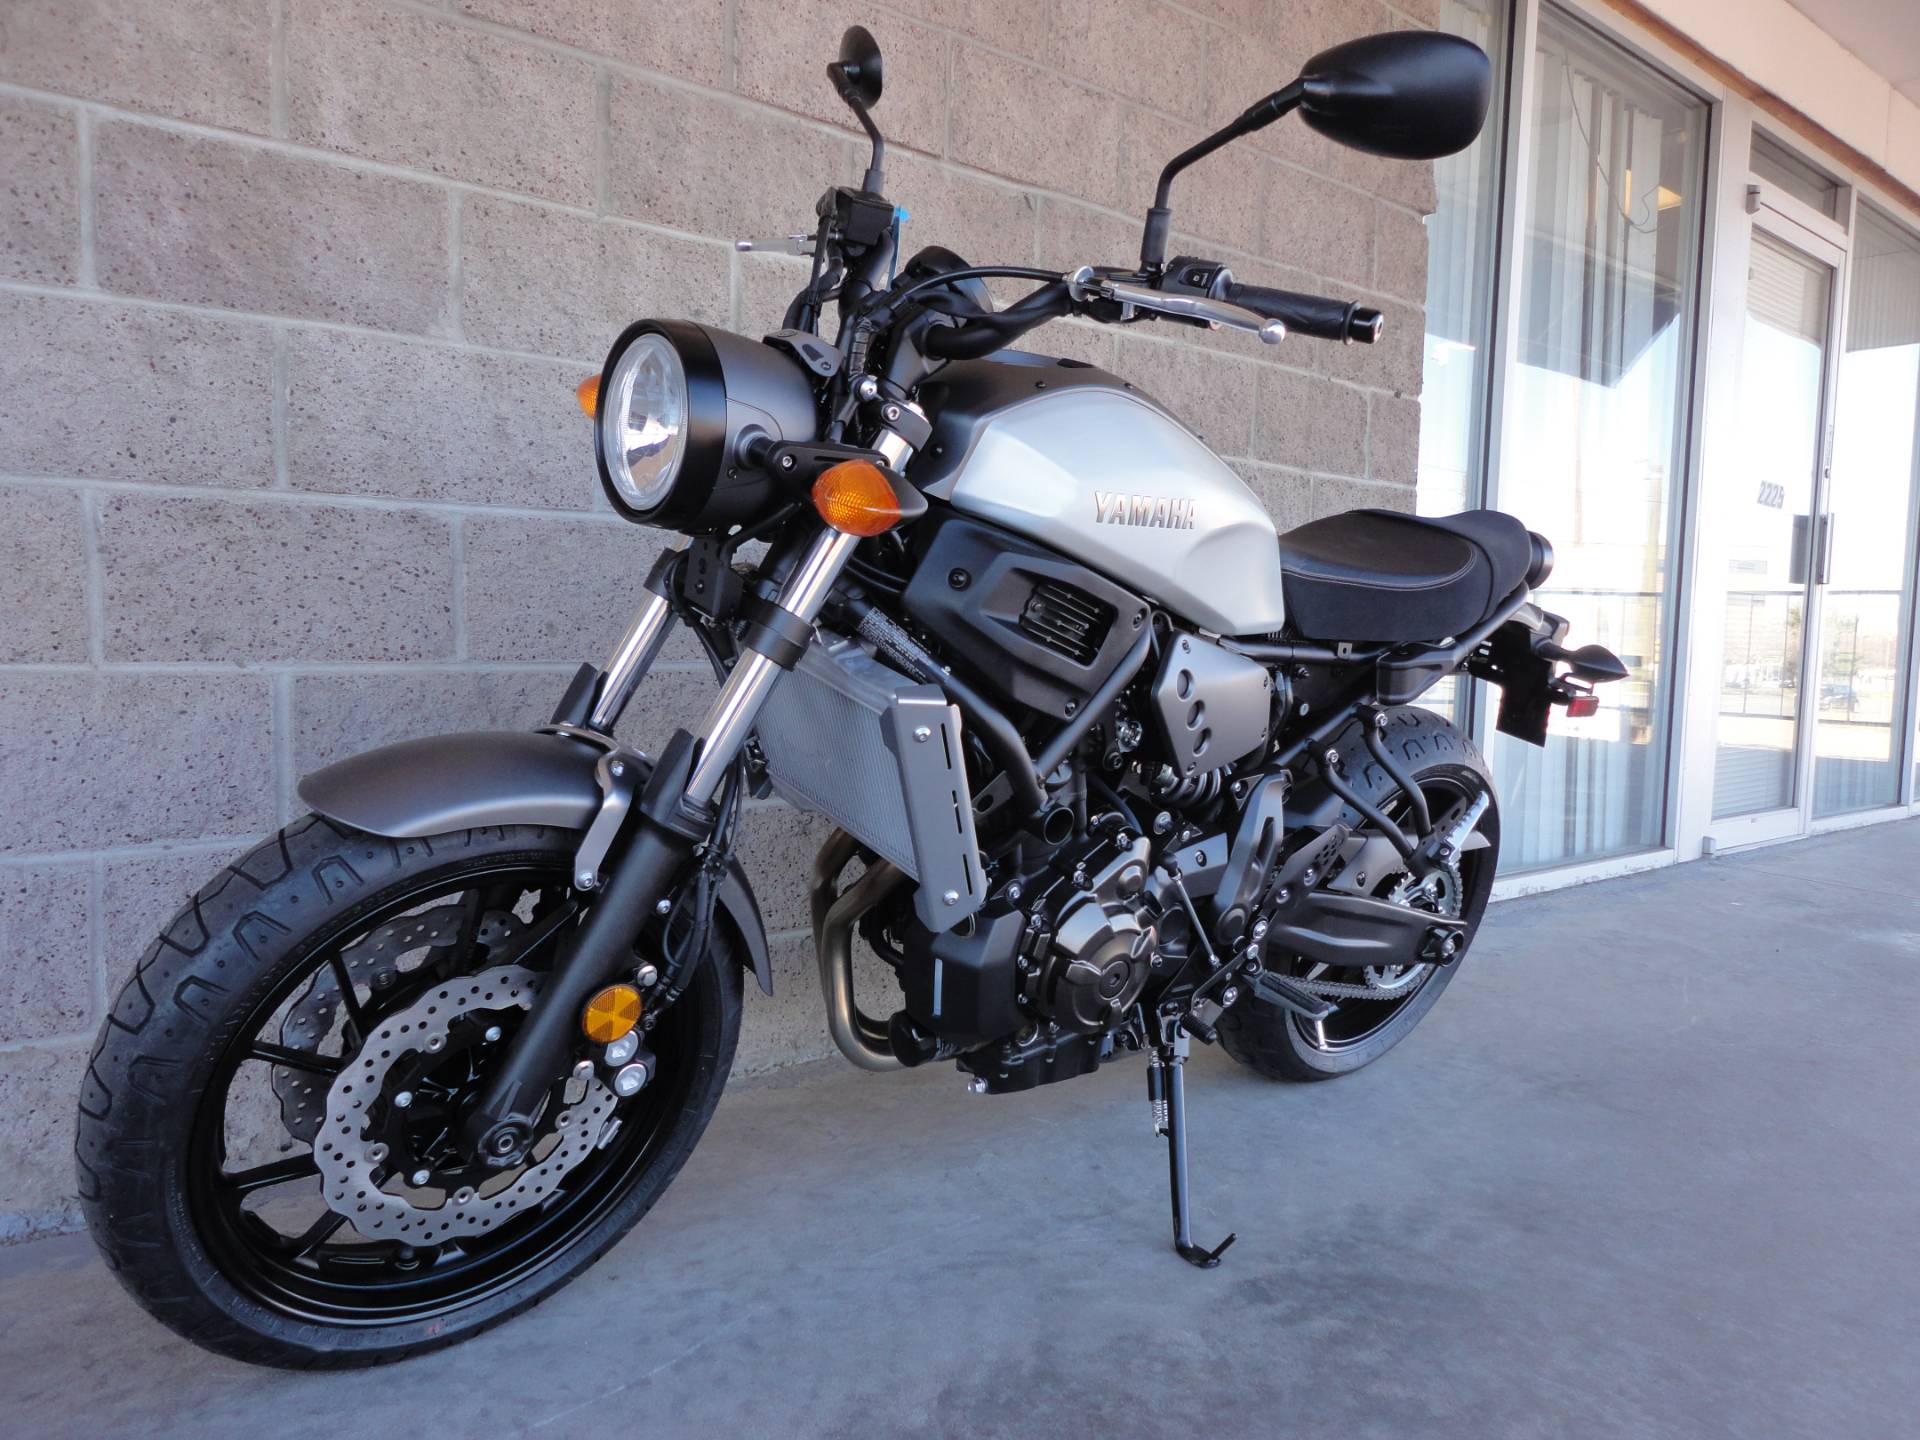 2018 yamaha xsr700 motorcycles denver colorado v0052 for Yamaha installment financing